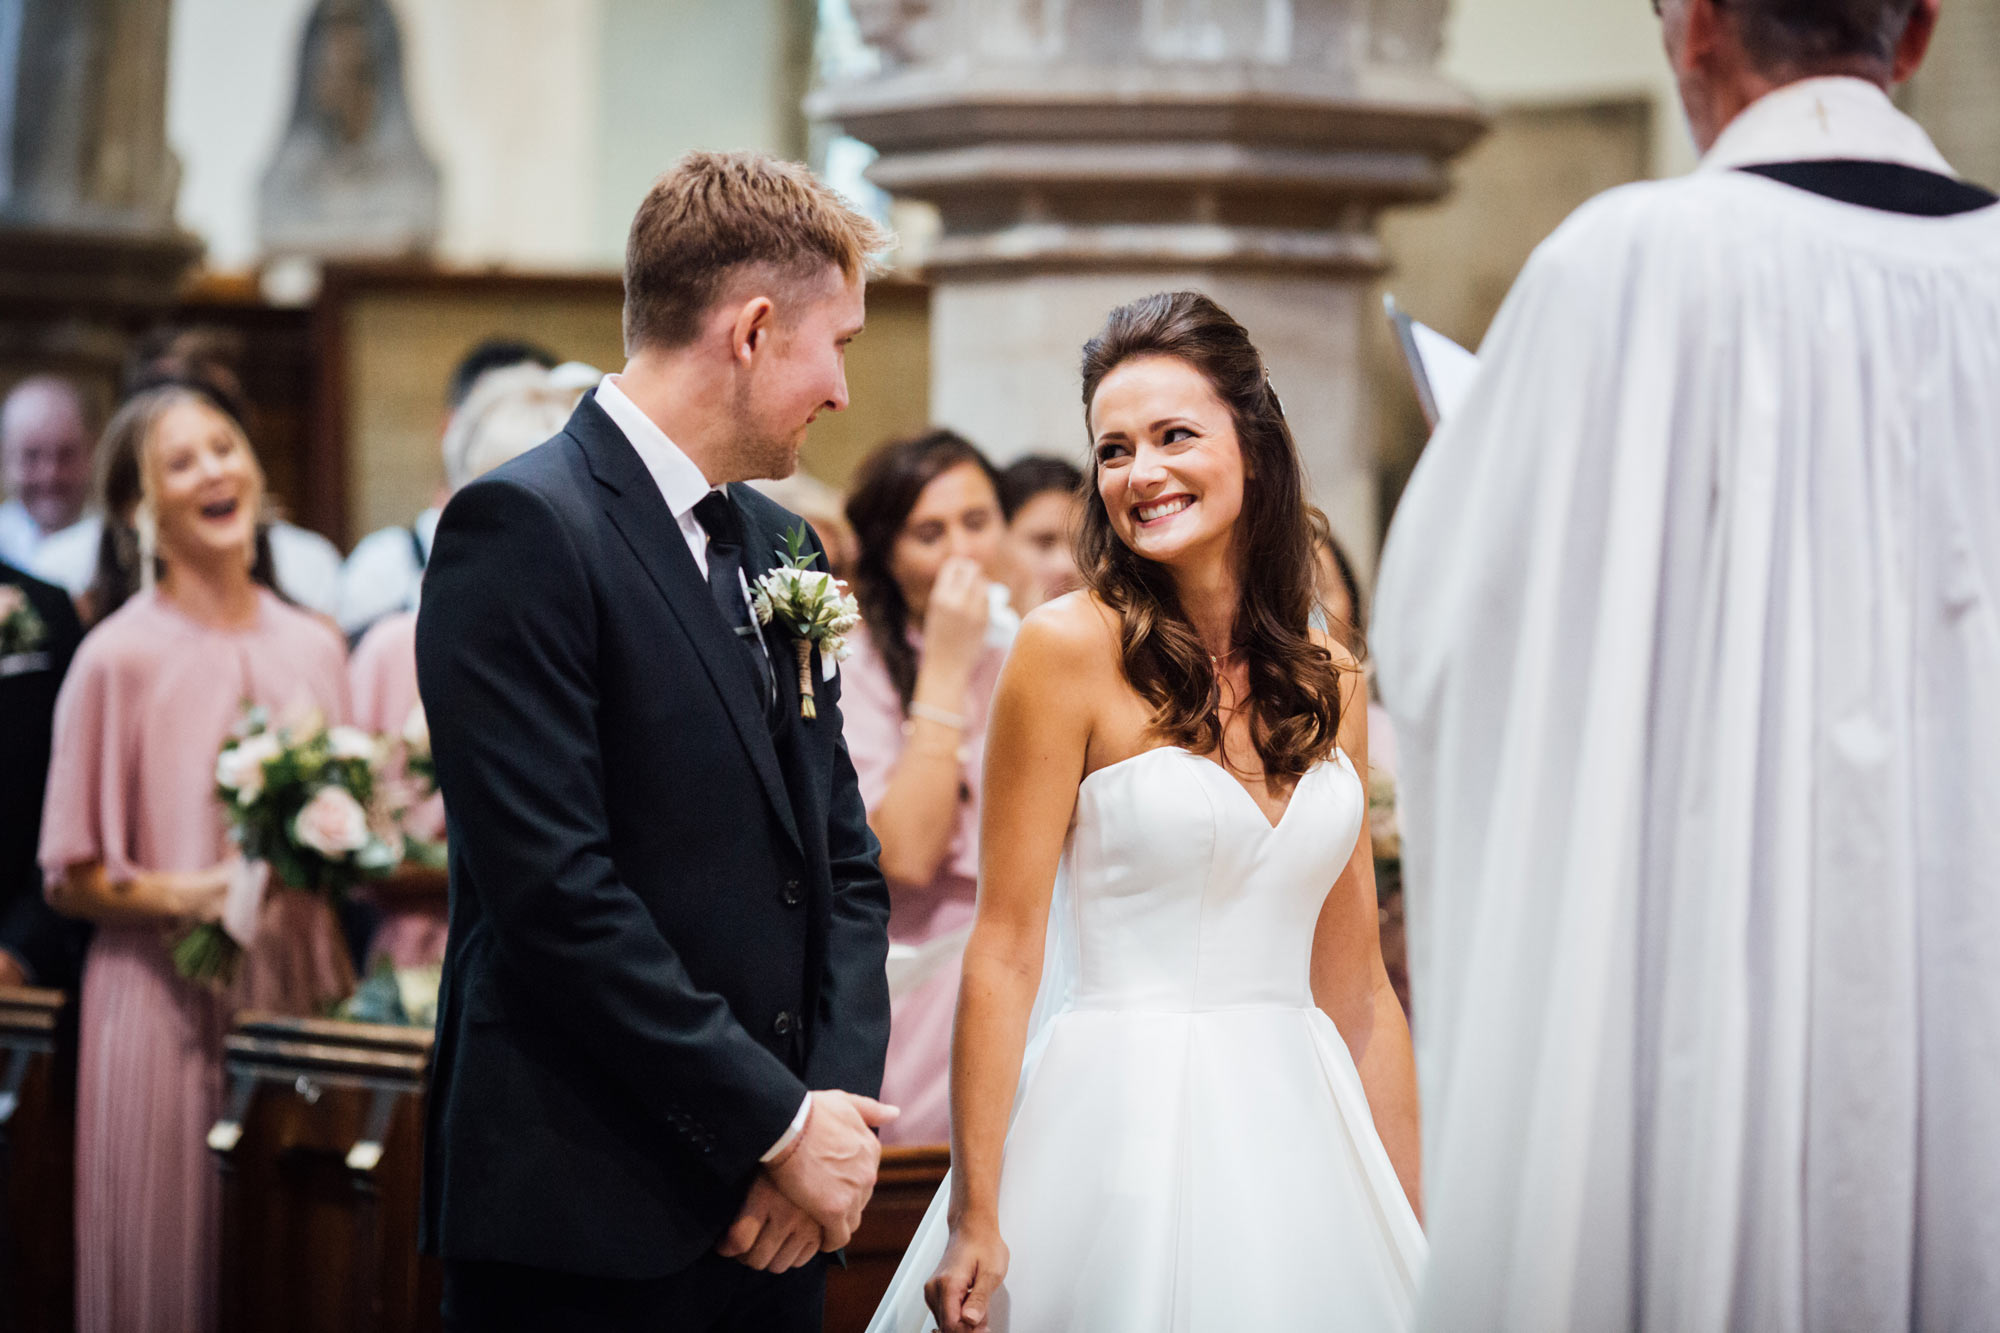 11.08.18_Jade_Dan_Wedding_QS-42.jpg